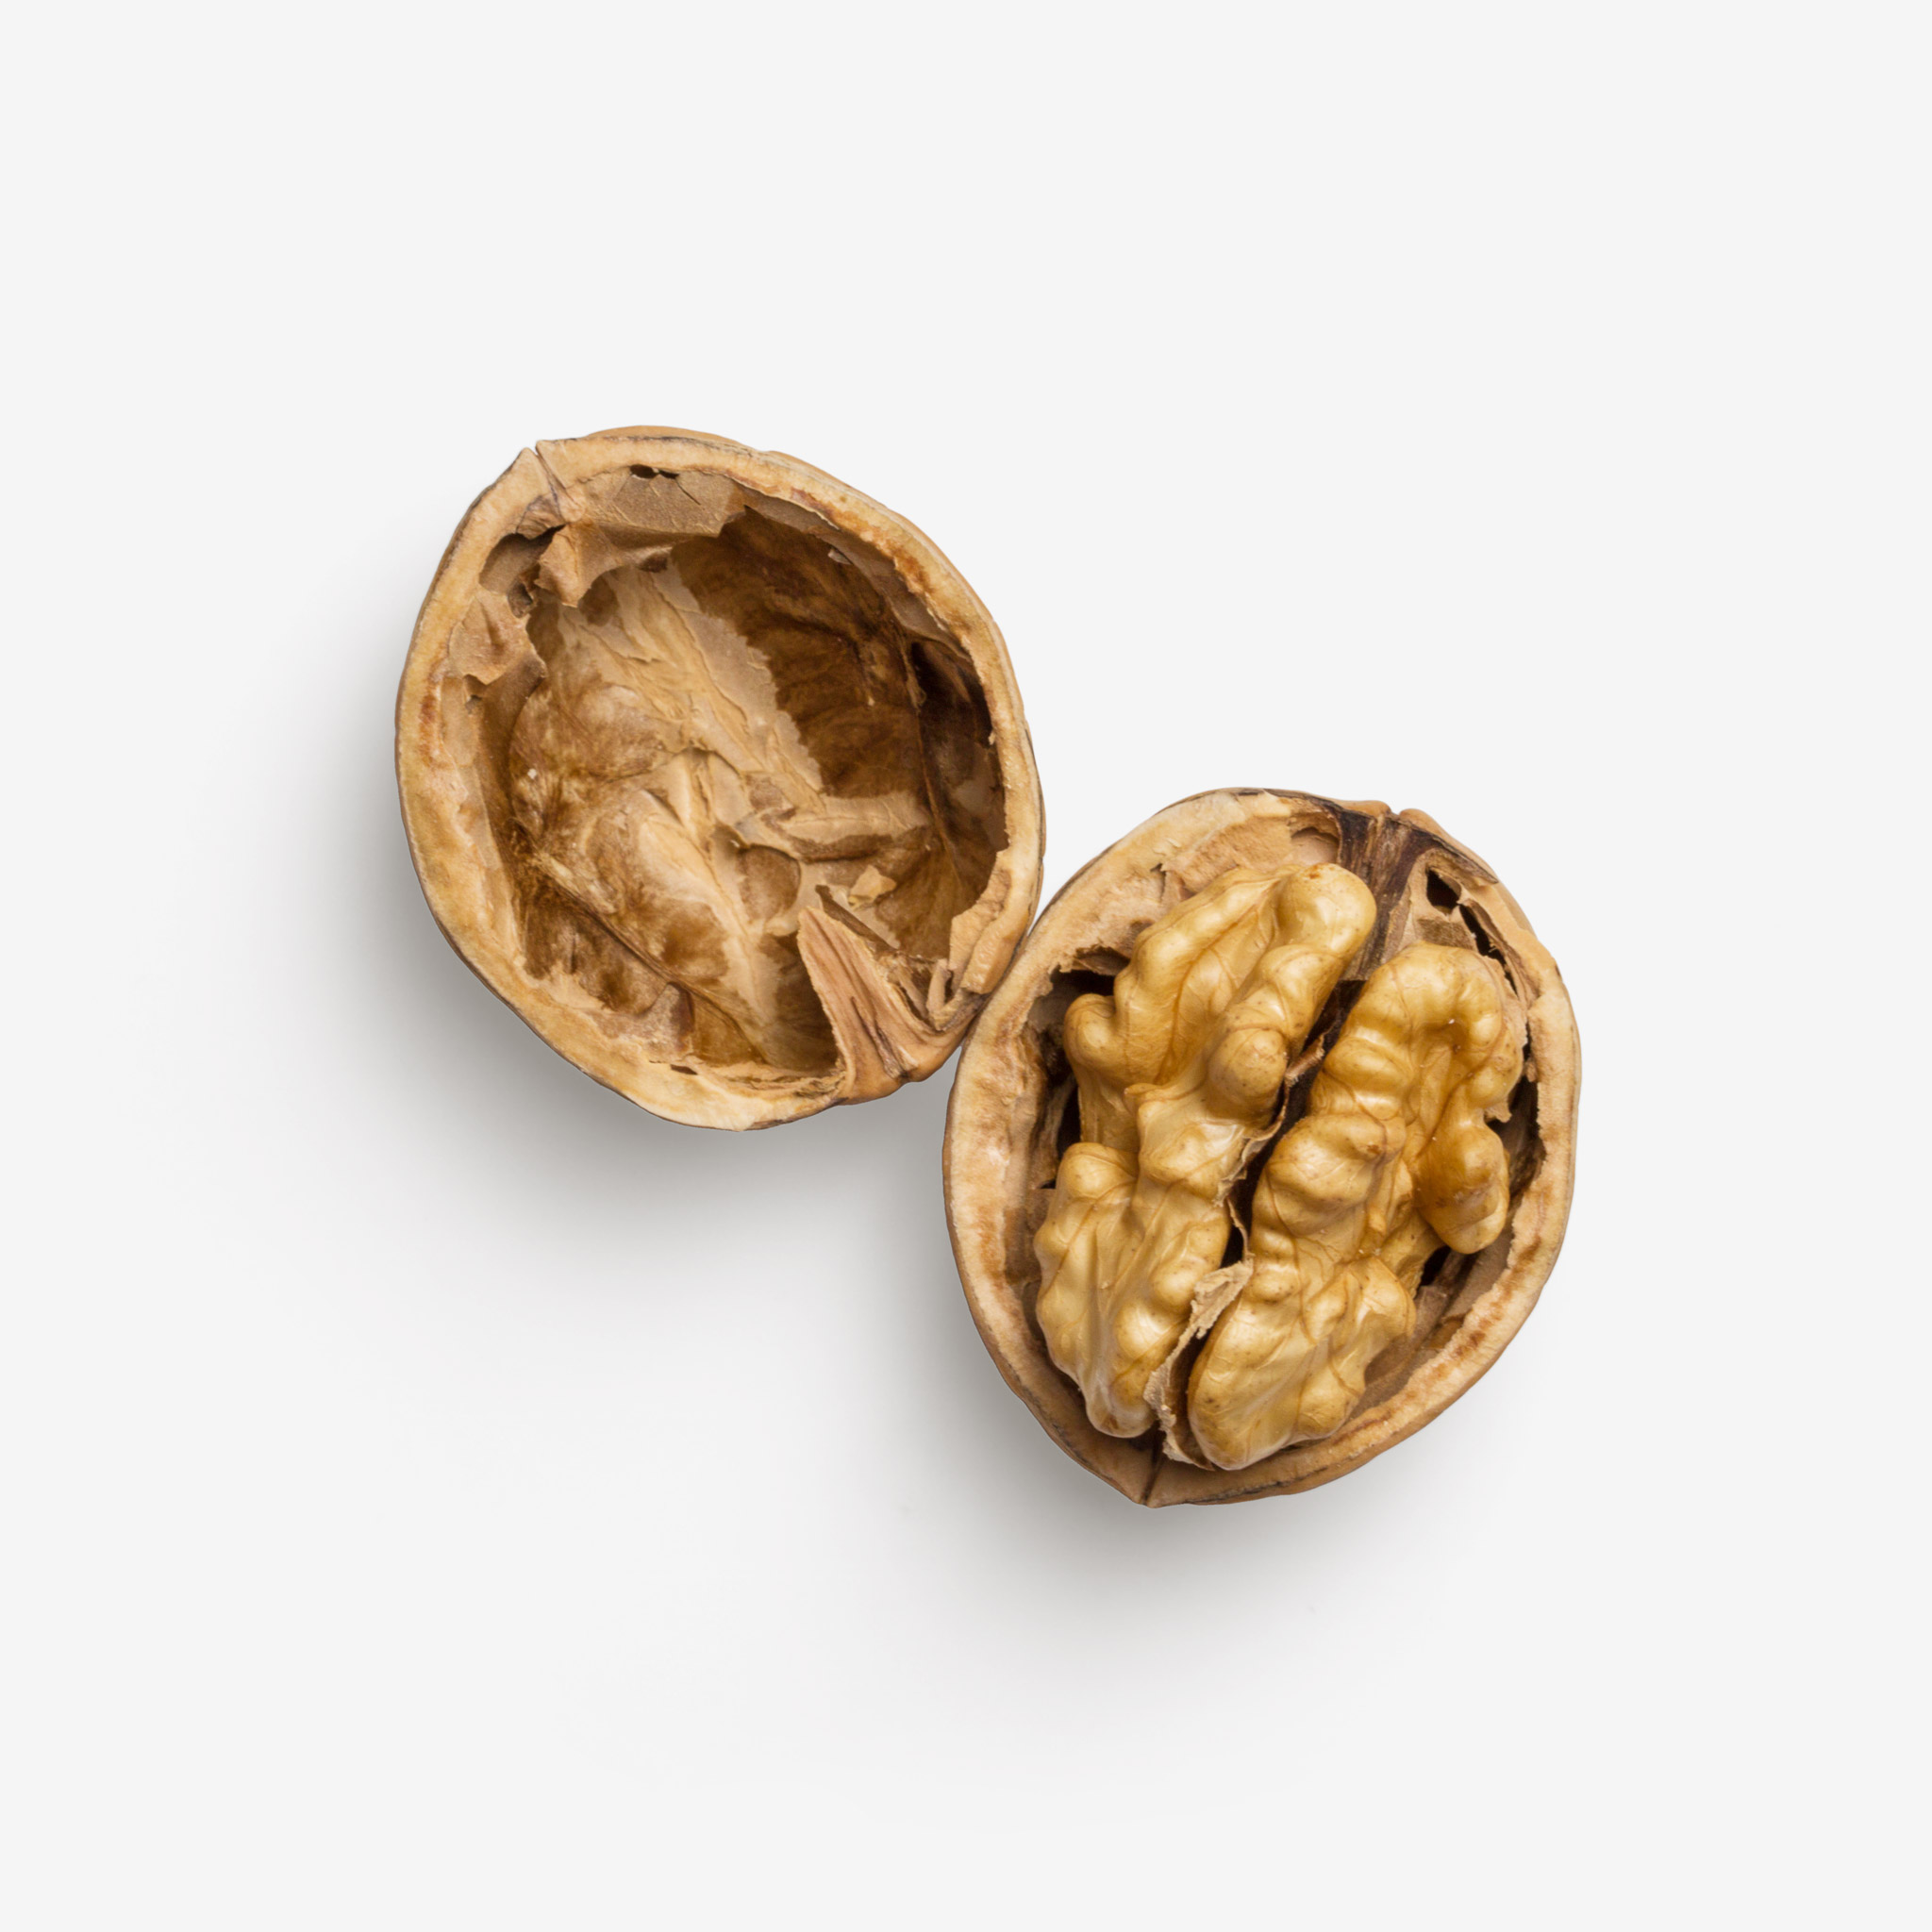 Walnut PSD image with transparent background